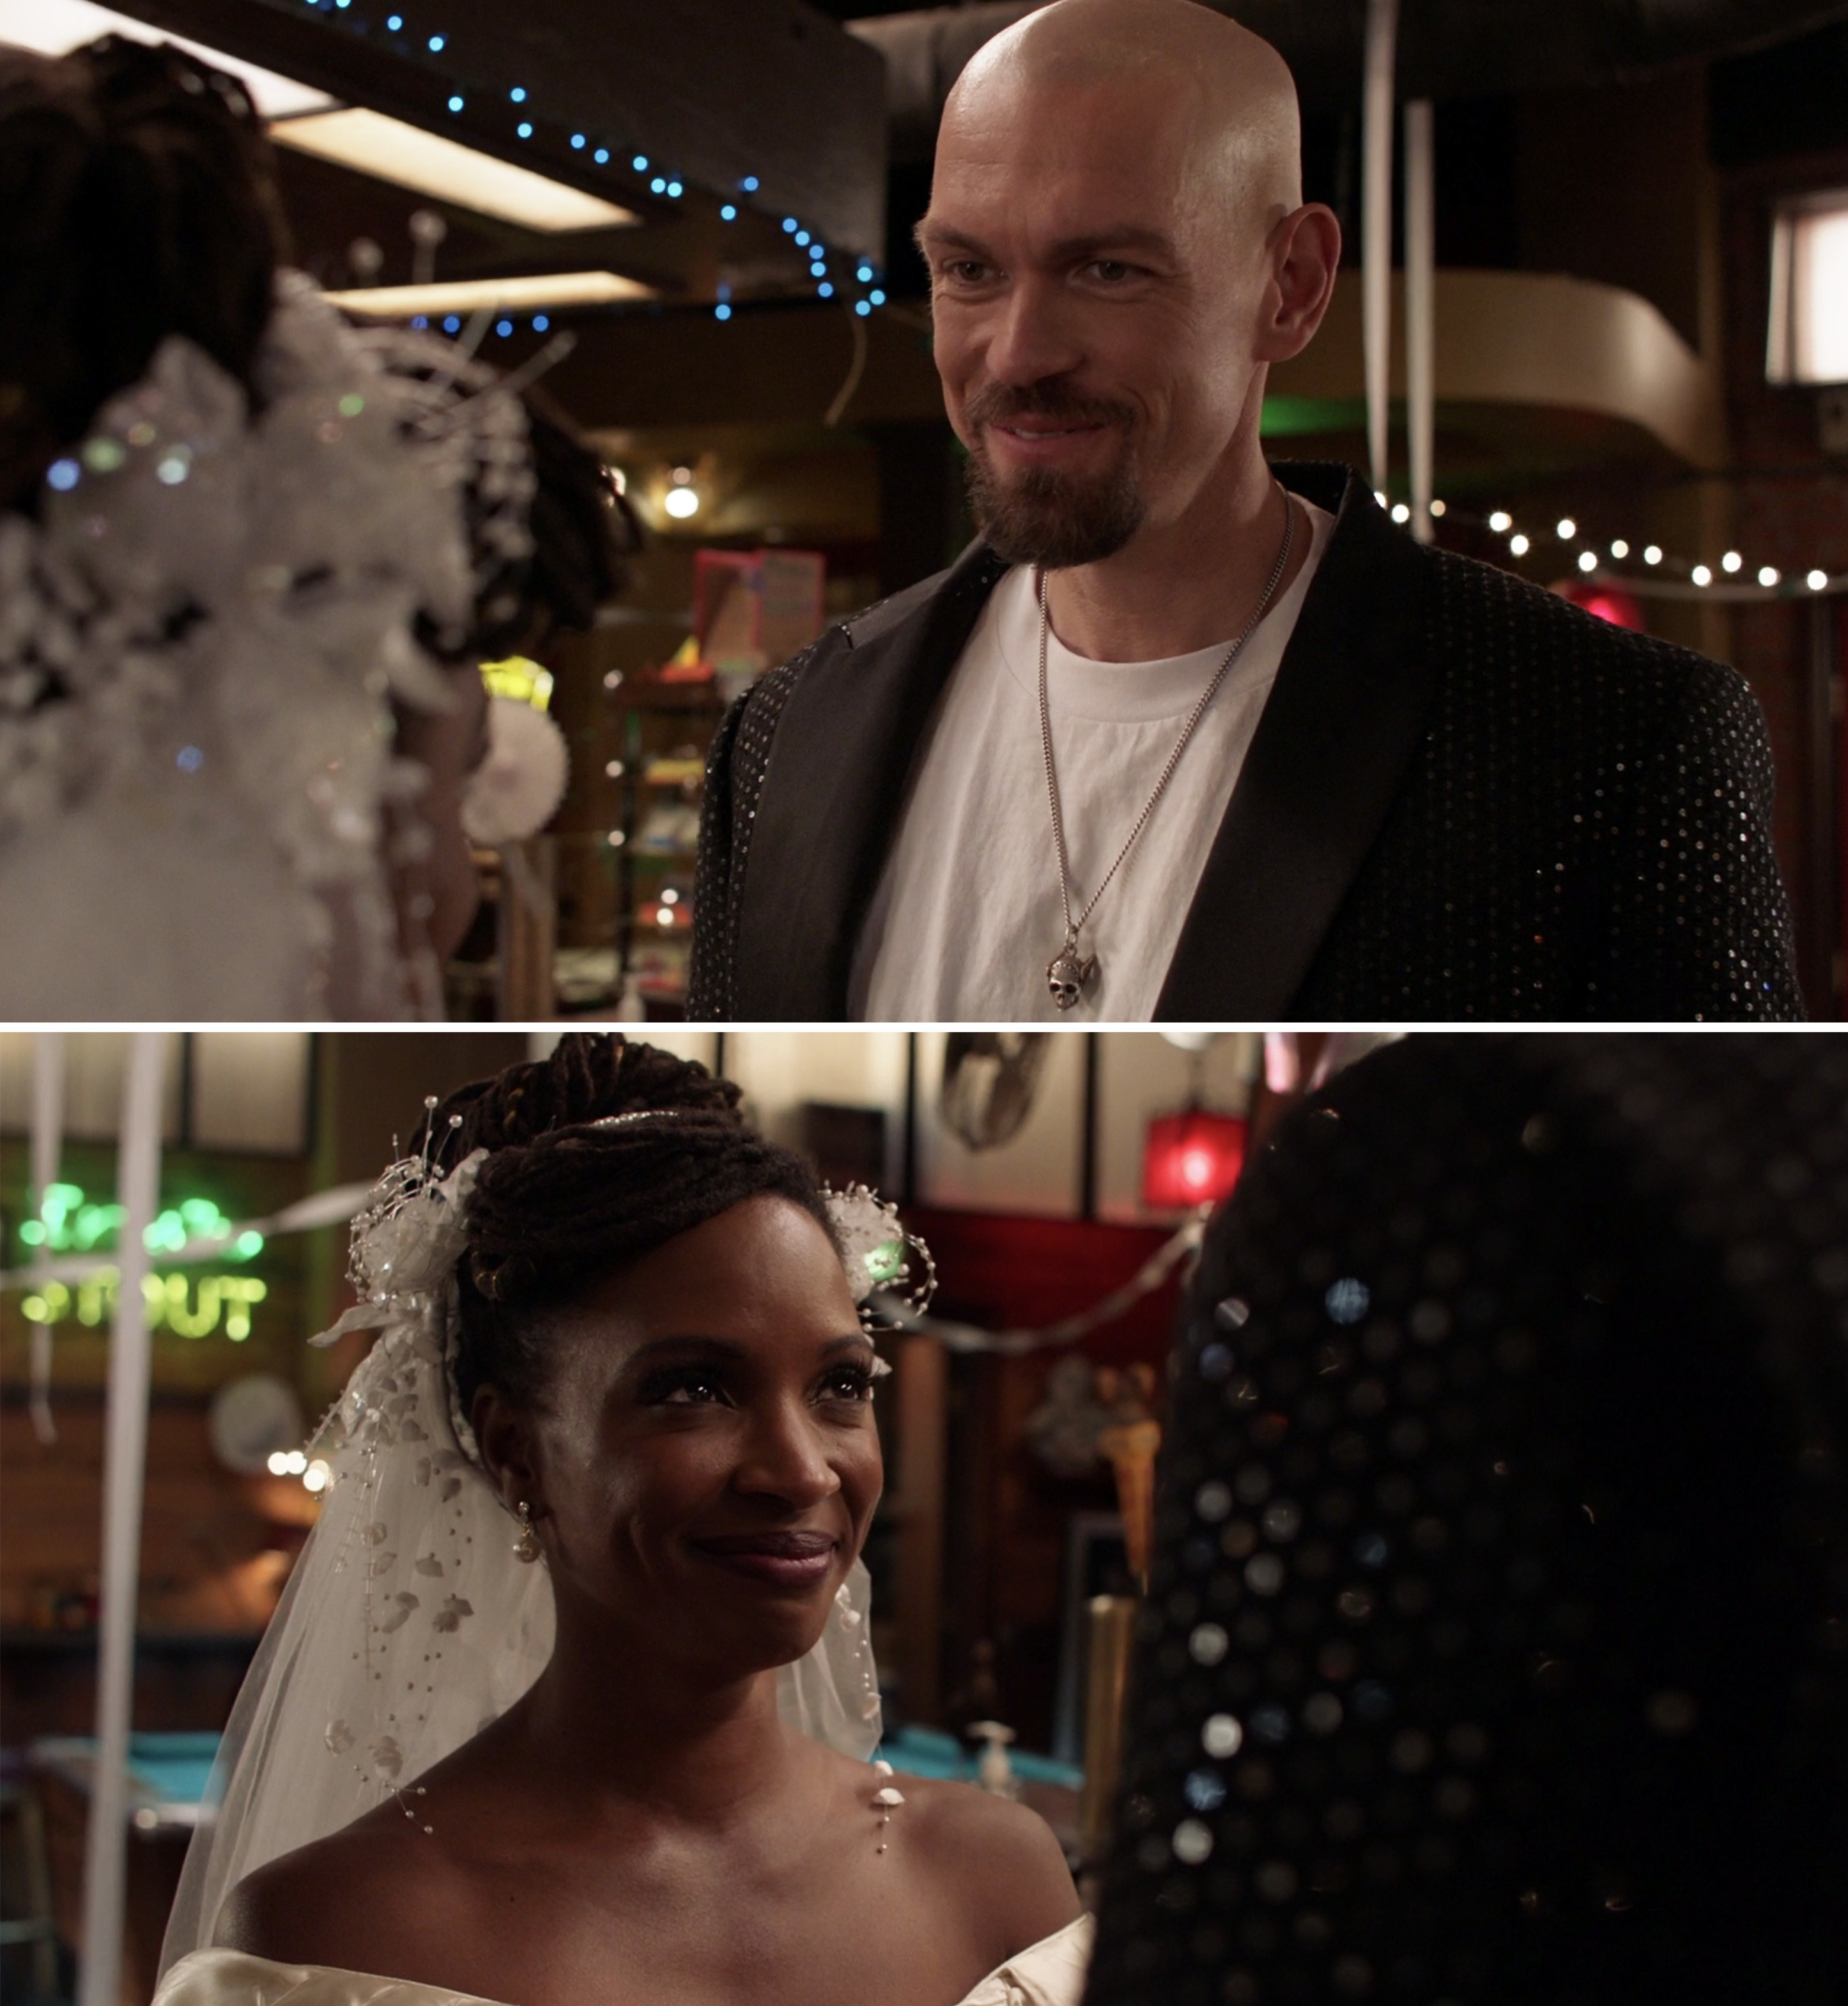 Kevin and Veronica on their wedding day